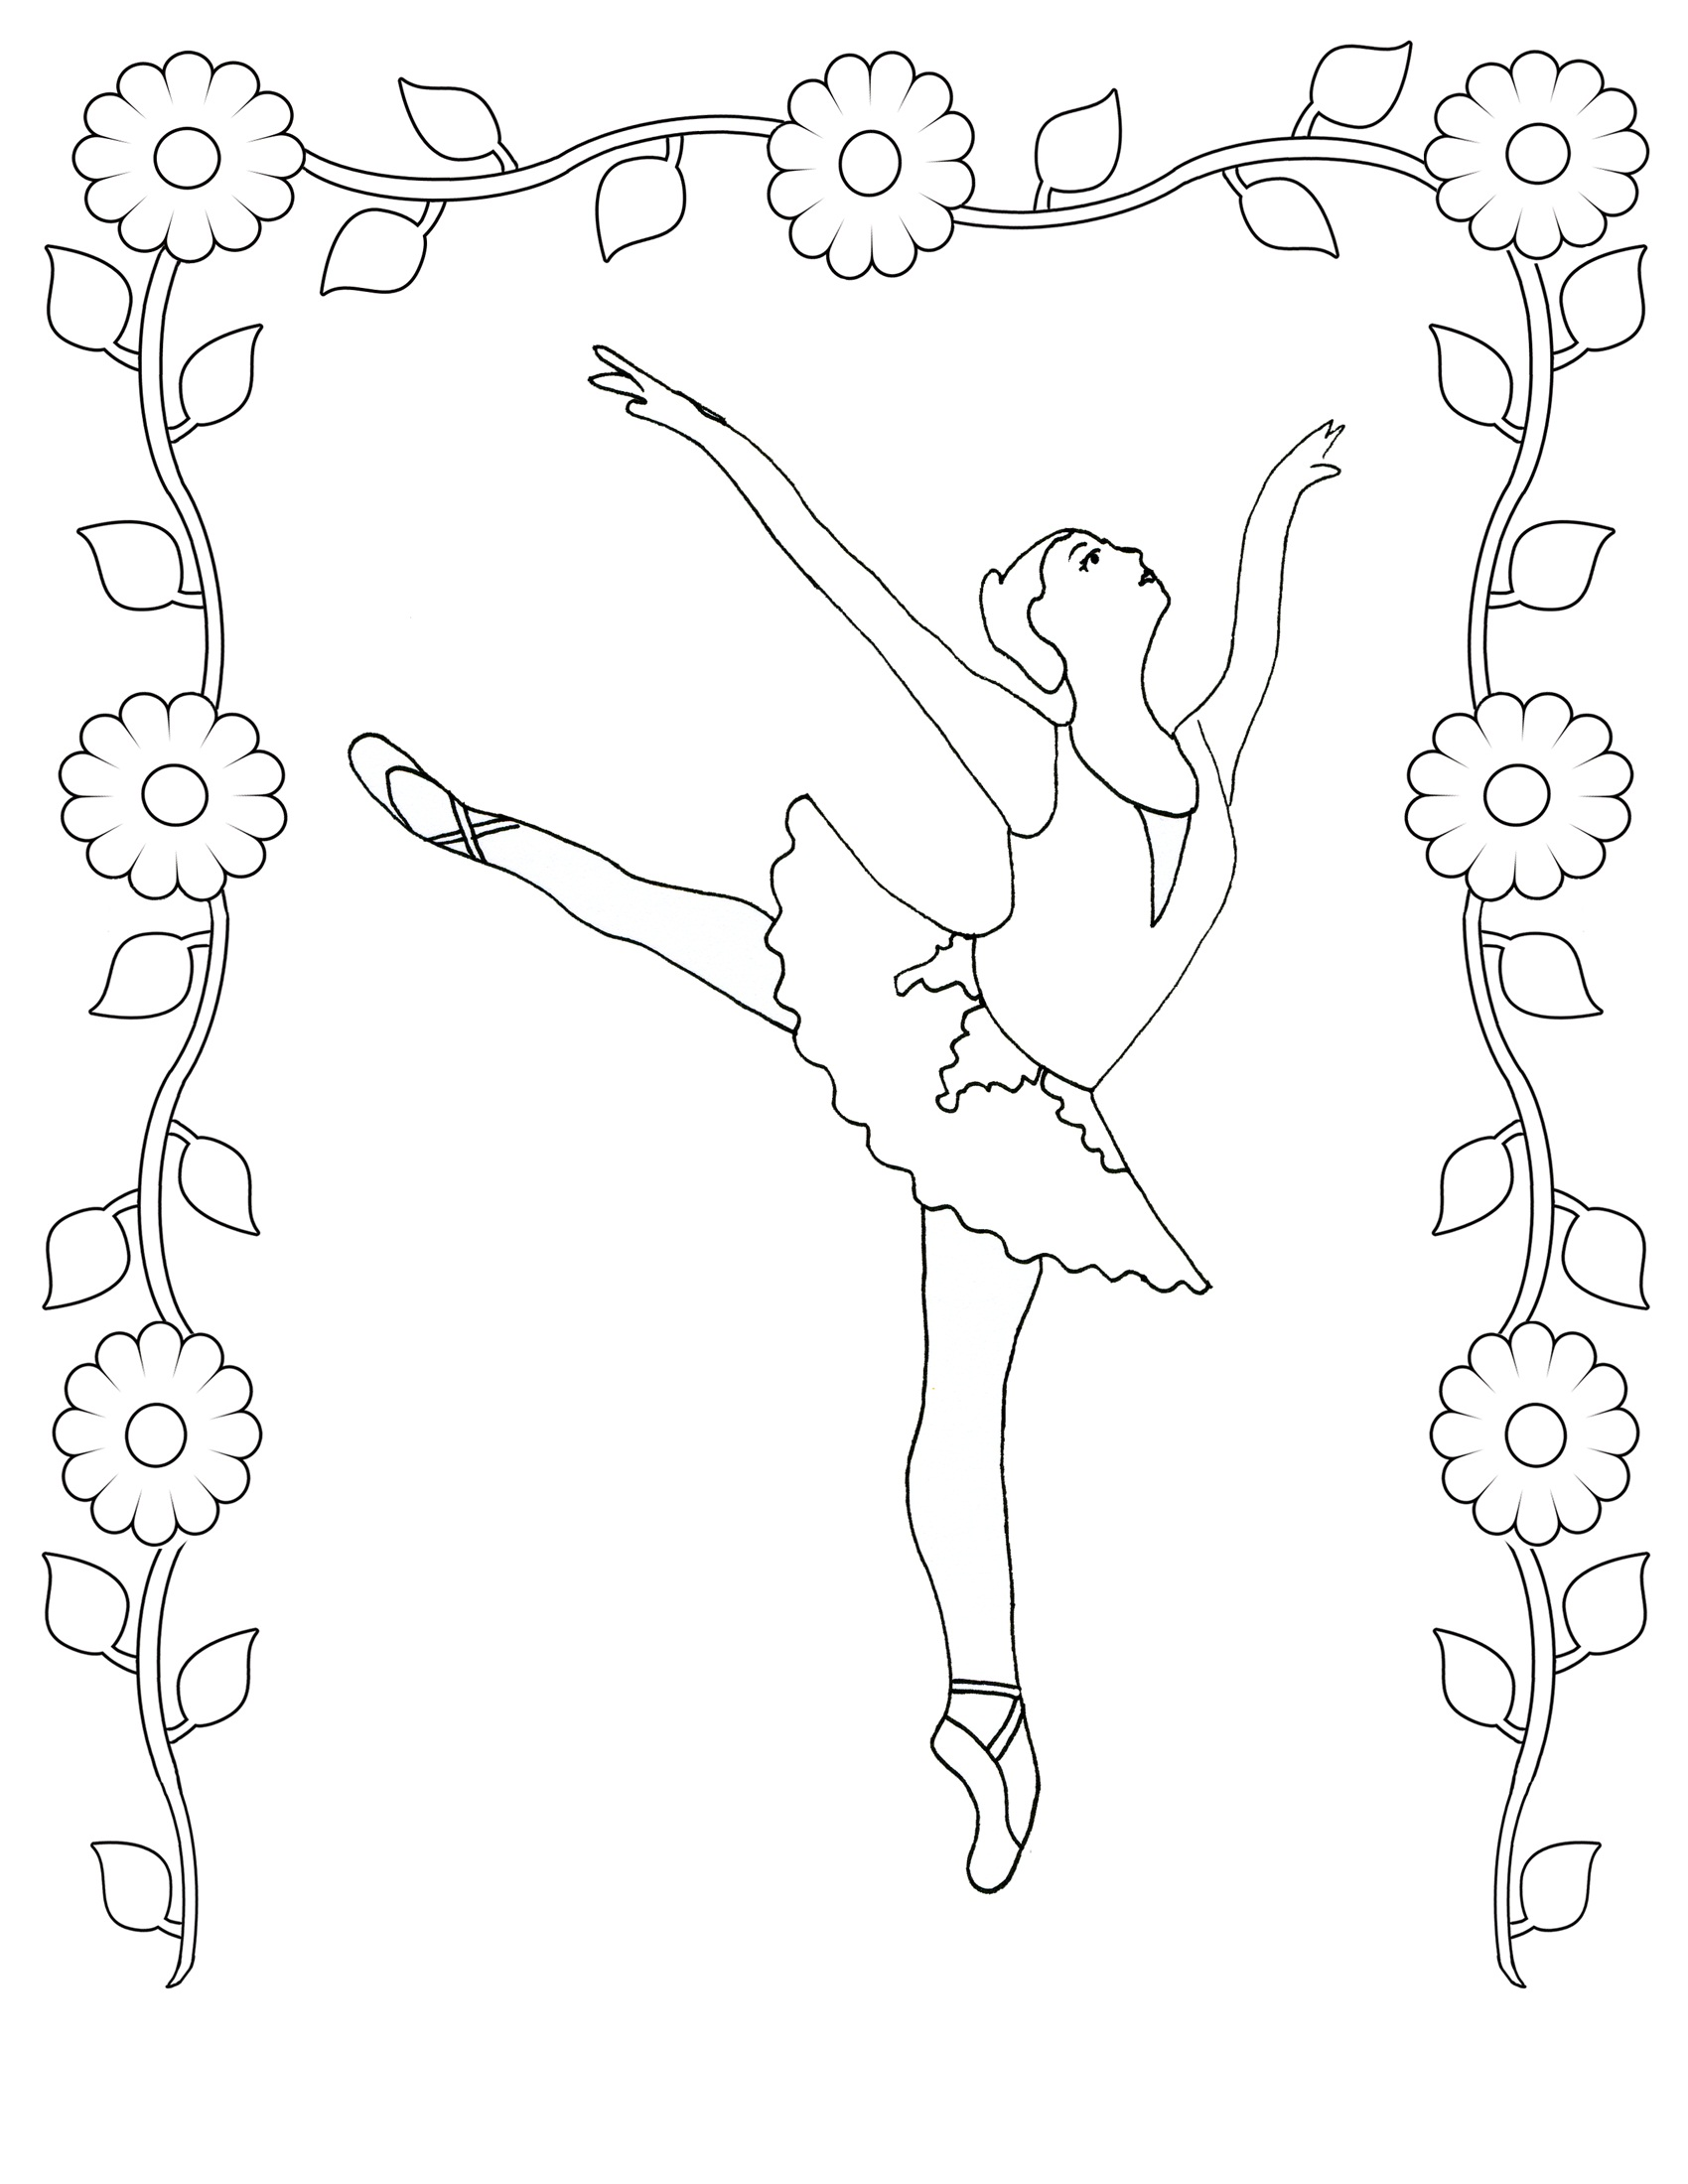 Free Barbie Ballerina Coloring Pages ~ Alltoys for .